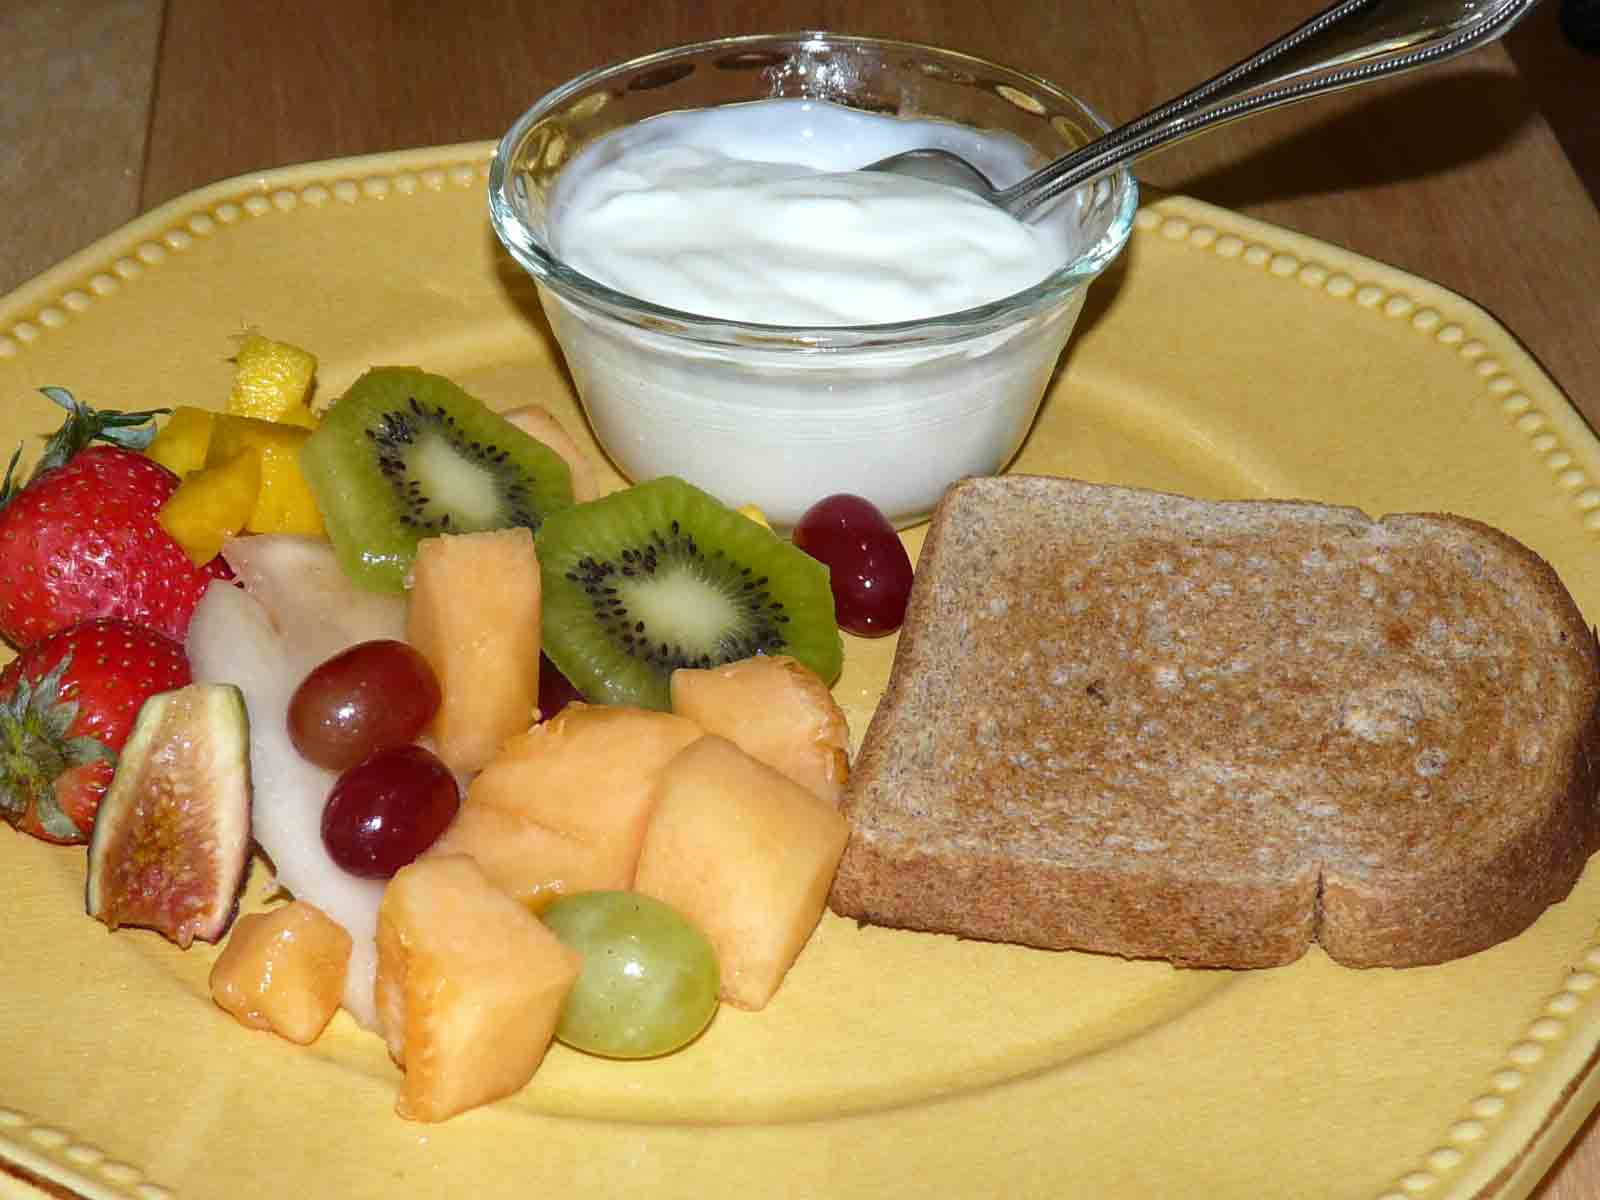 A Healthy Breakfast  Food and Health munications